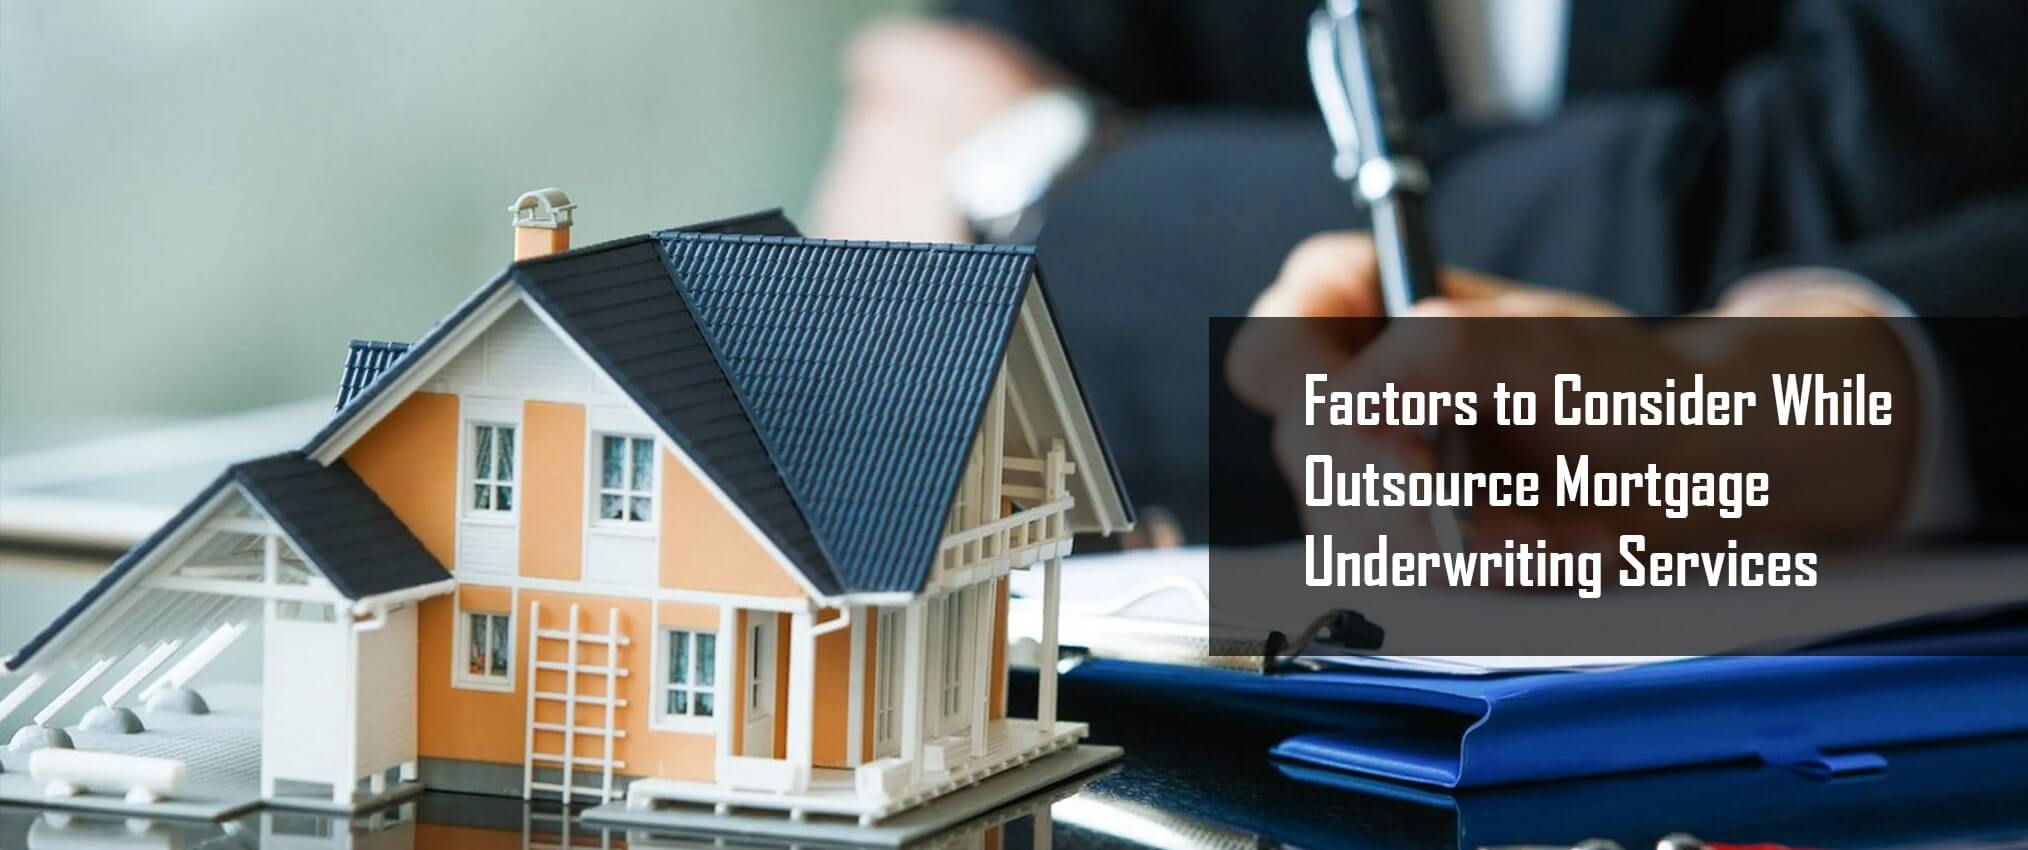 mortgage underwriting service